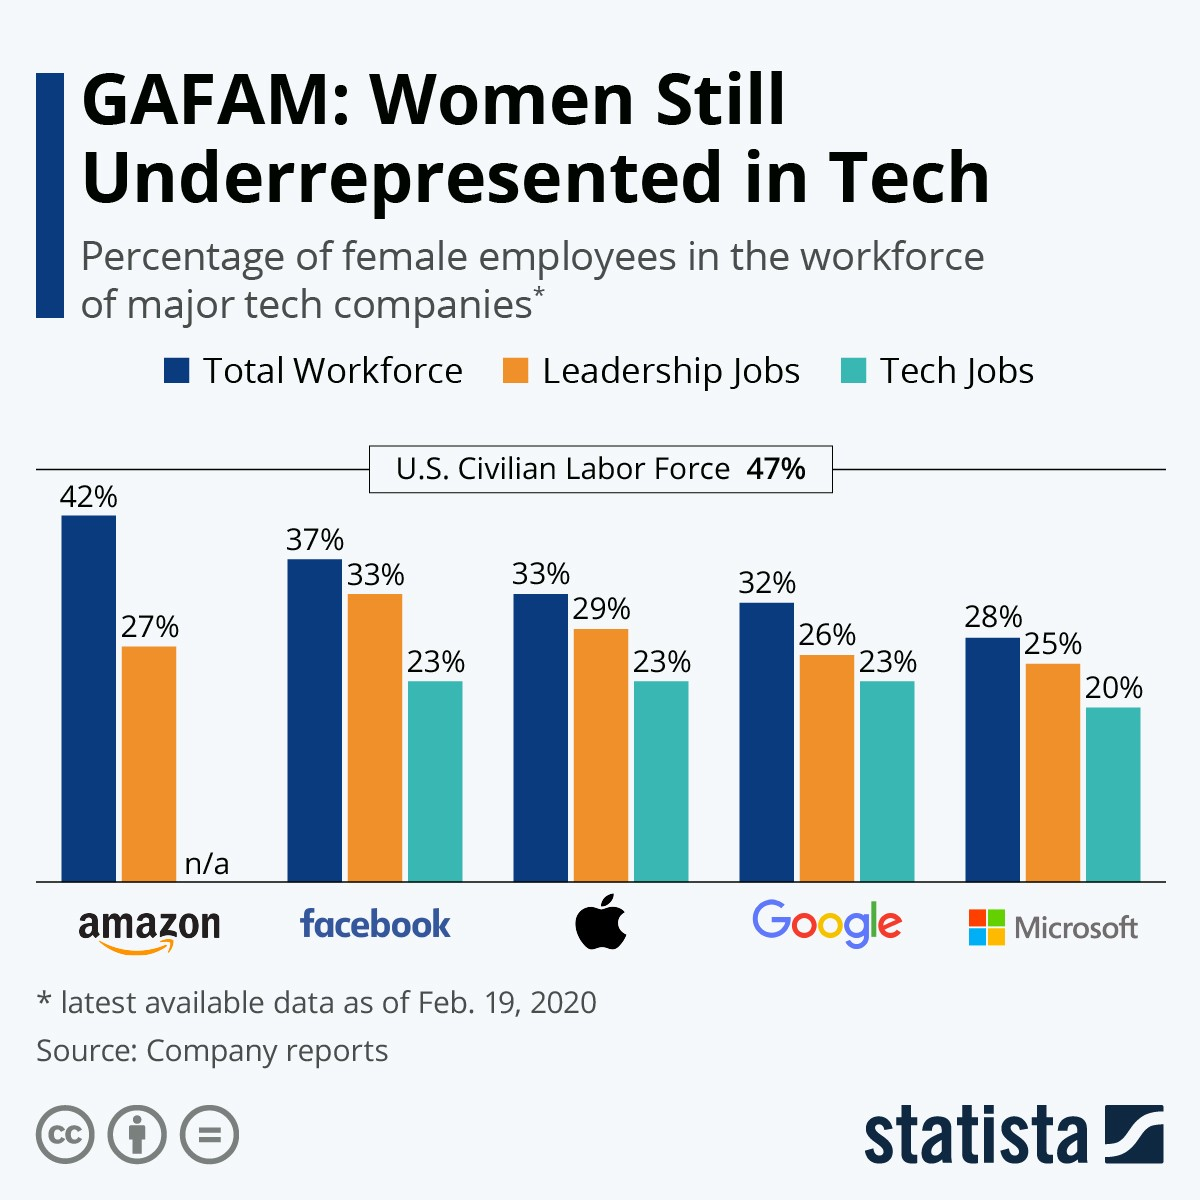 Why we need more women in tech: Redwerk's employees and customers experience